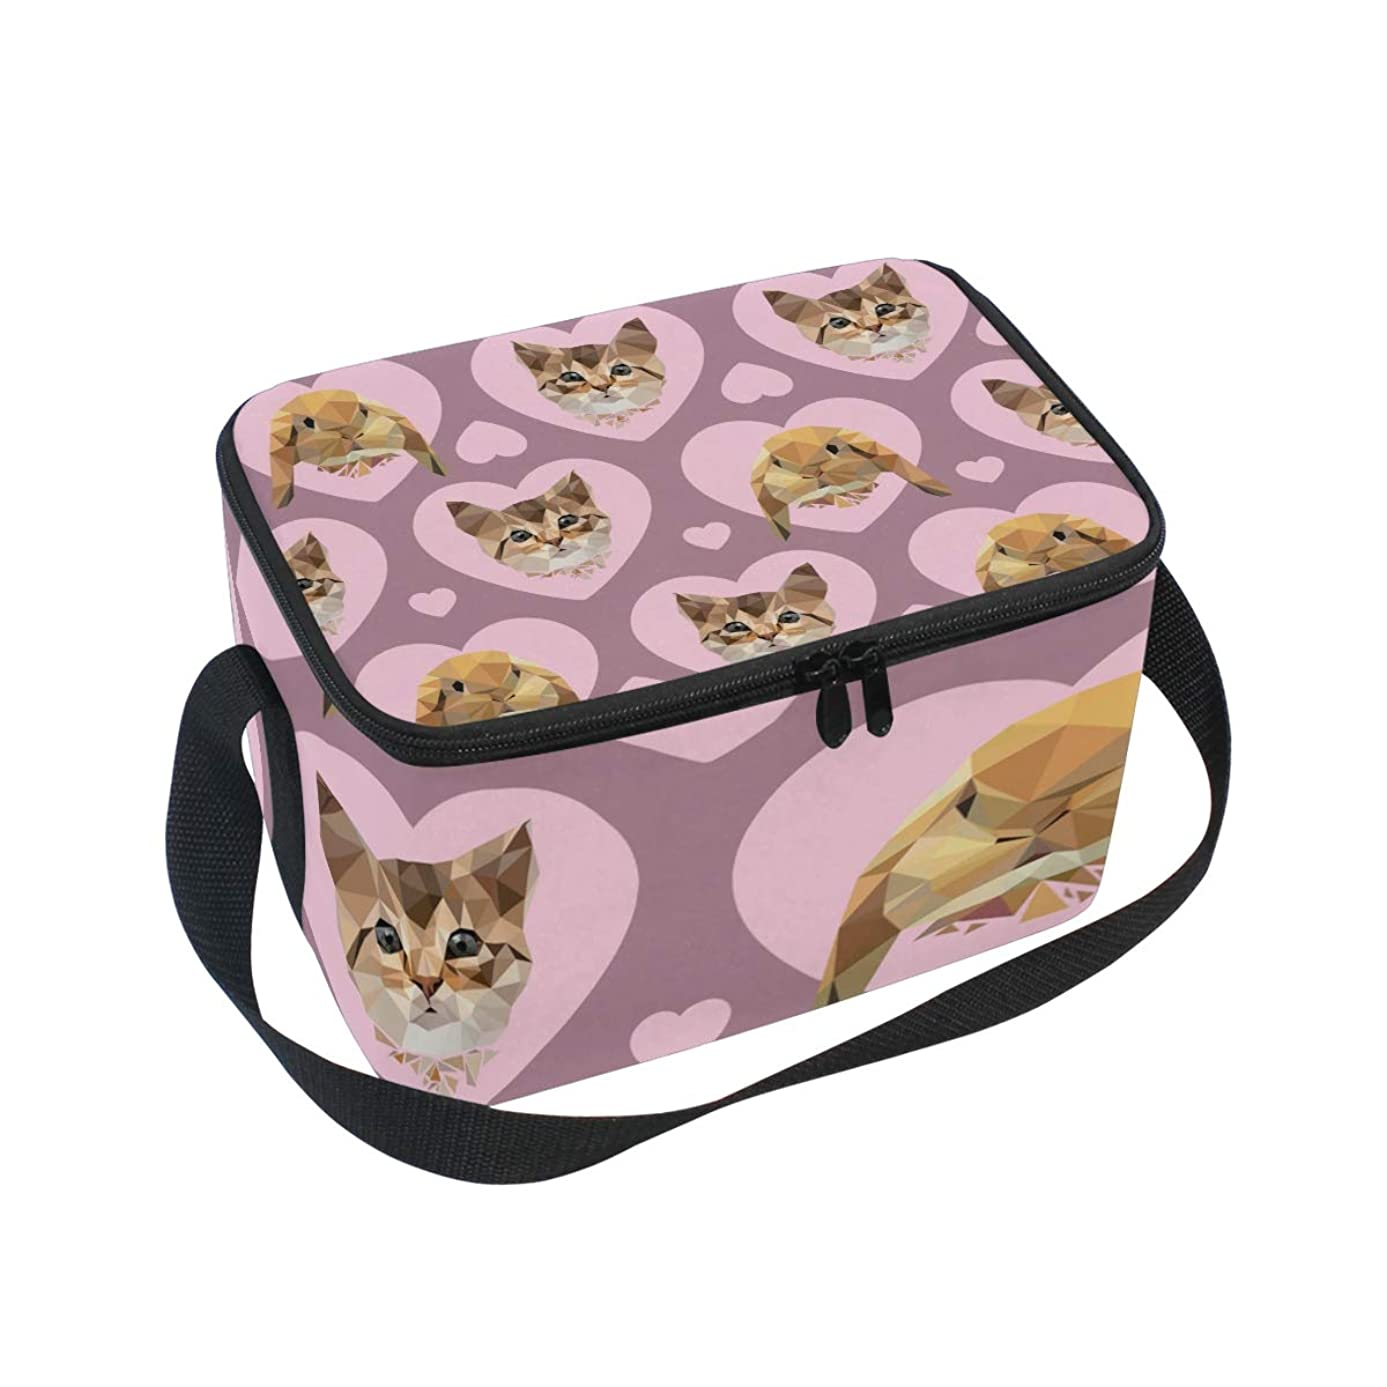 Insulated Lunch Bag Pink Love Heart Cat Rabbit Head Lunchbox Thermal Handbag Food Container Cooler Reusable Outdoors Travel Work School Strap Lunch Tote